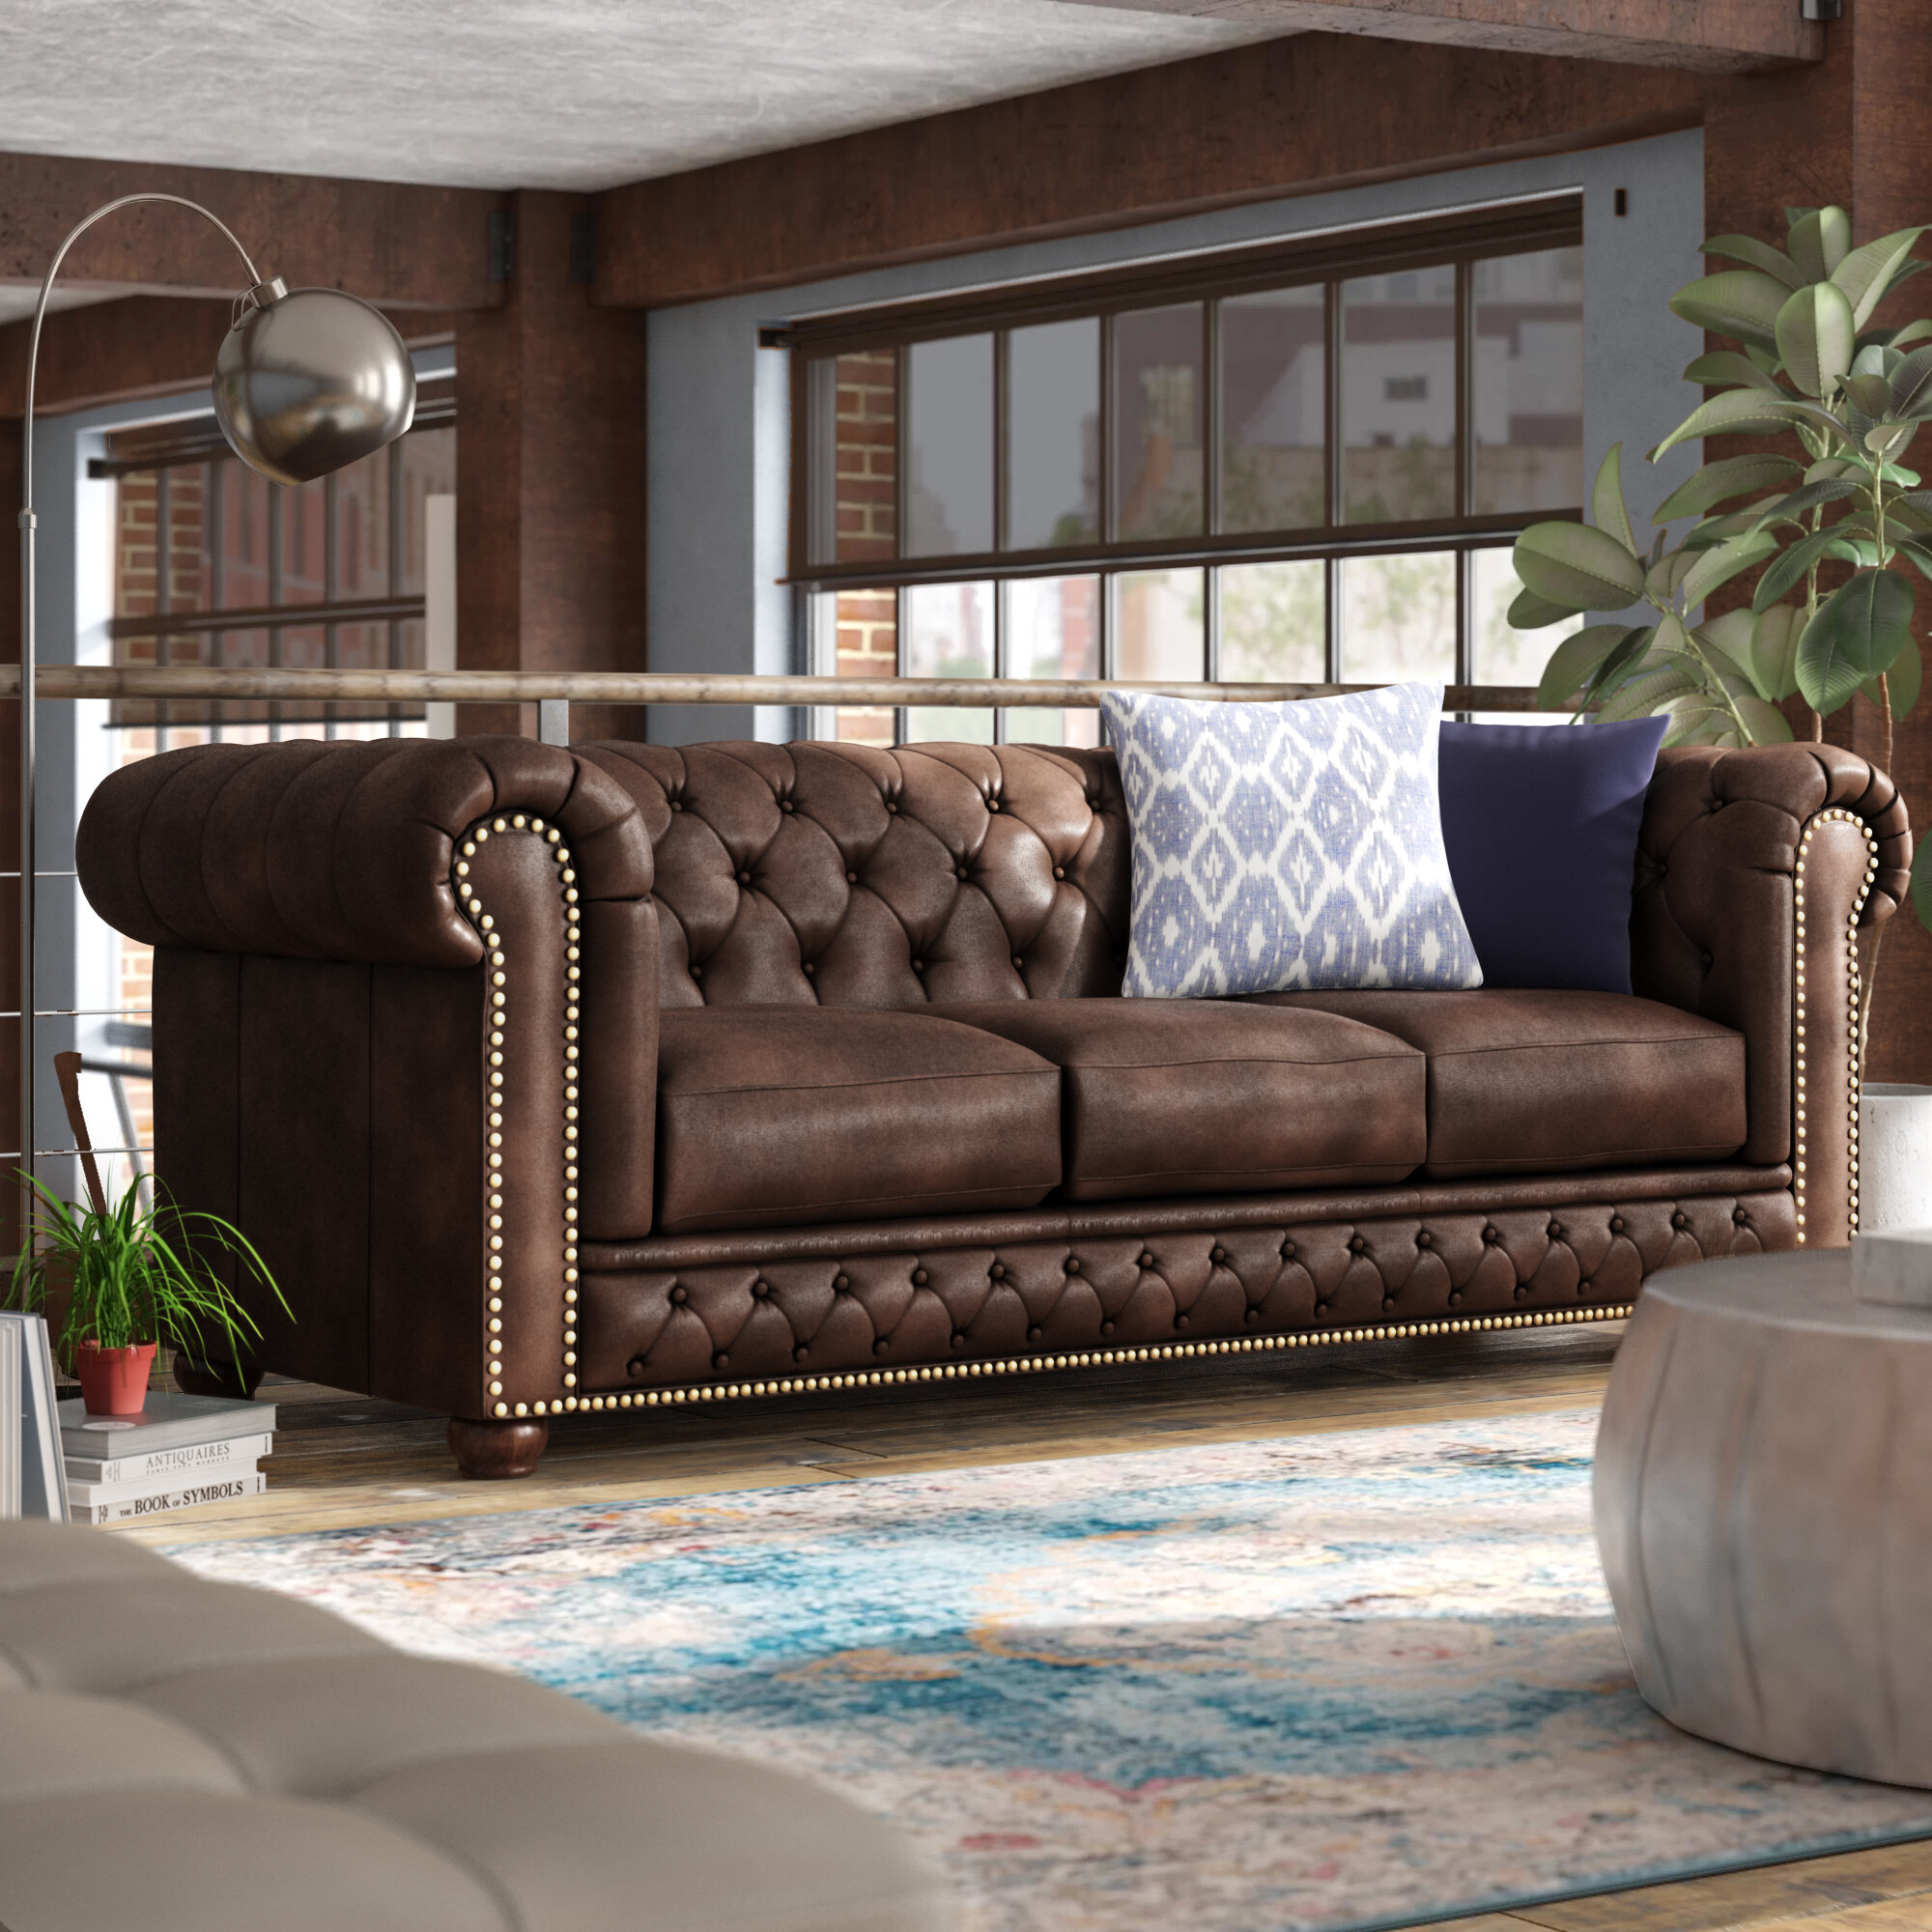 Worcester Leather Chesterfield Sofa